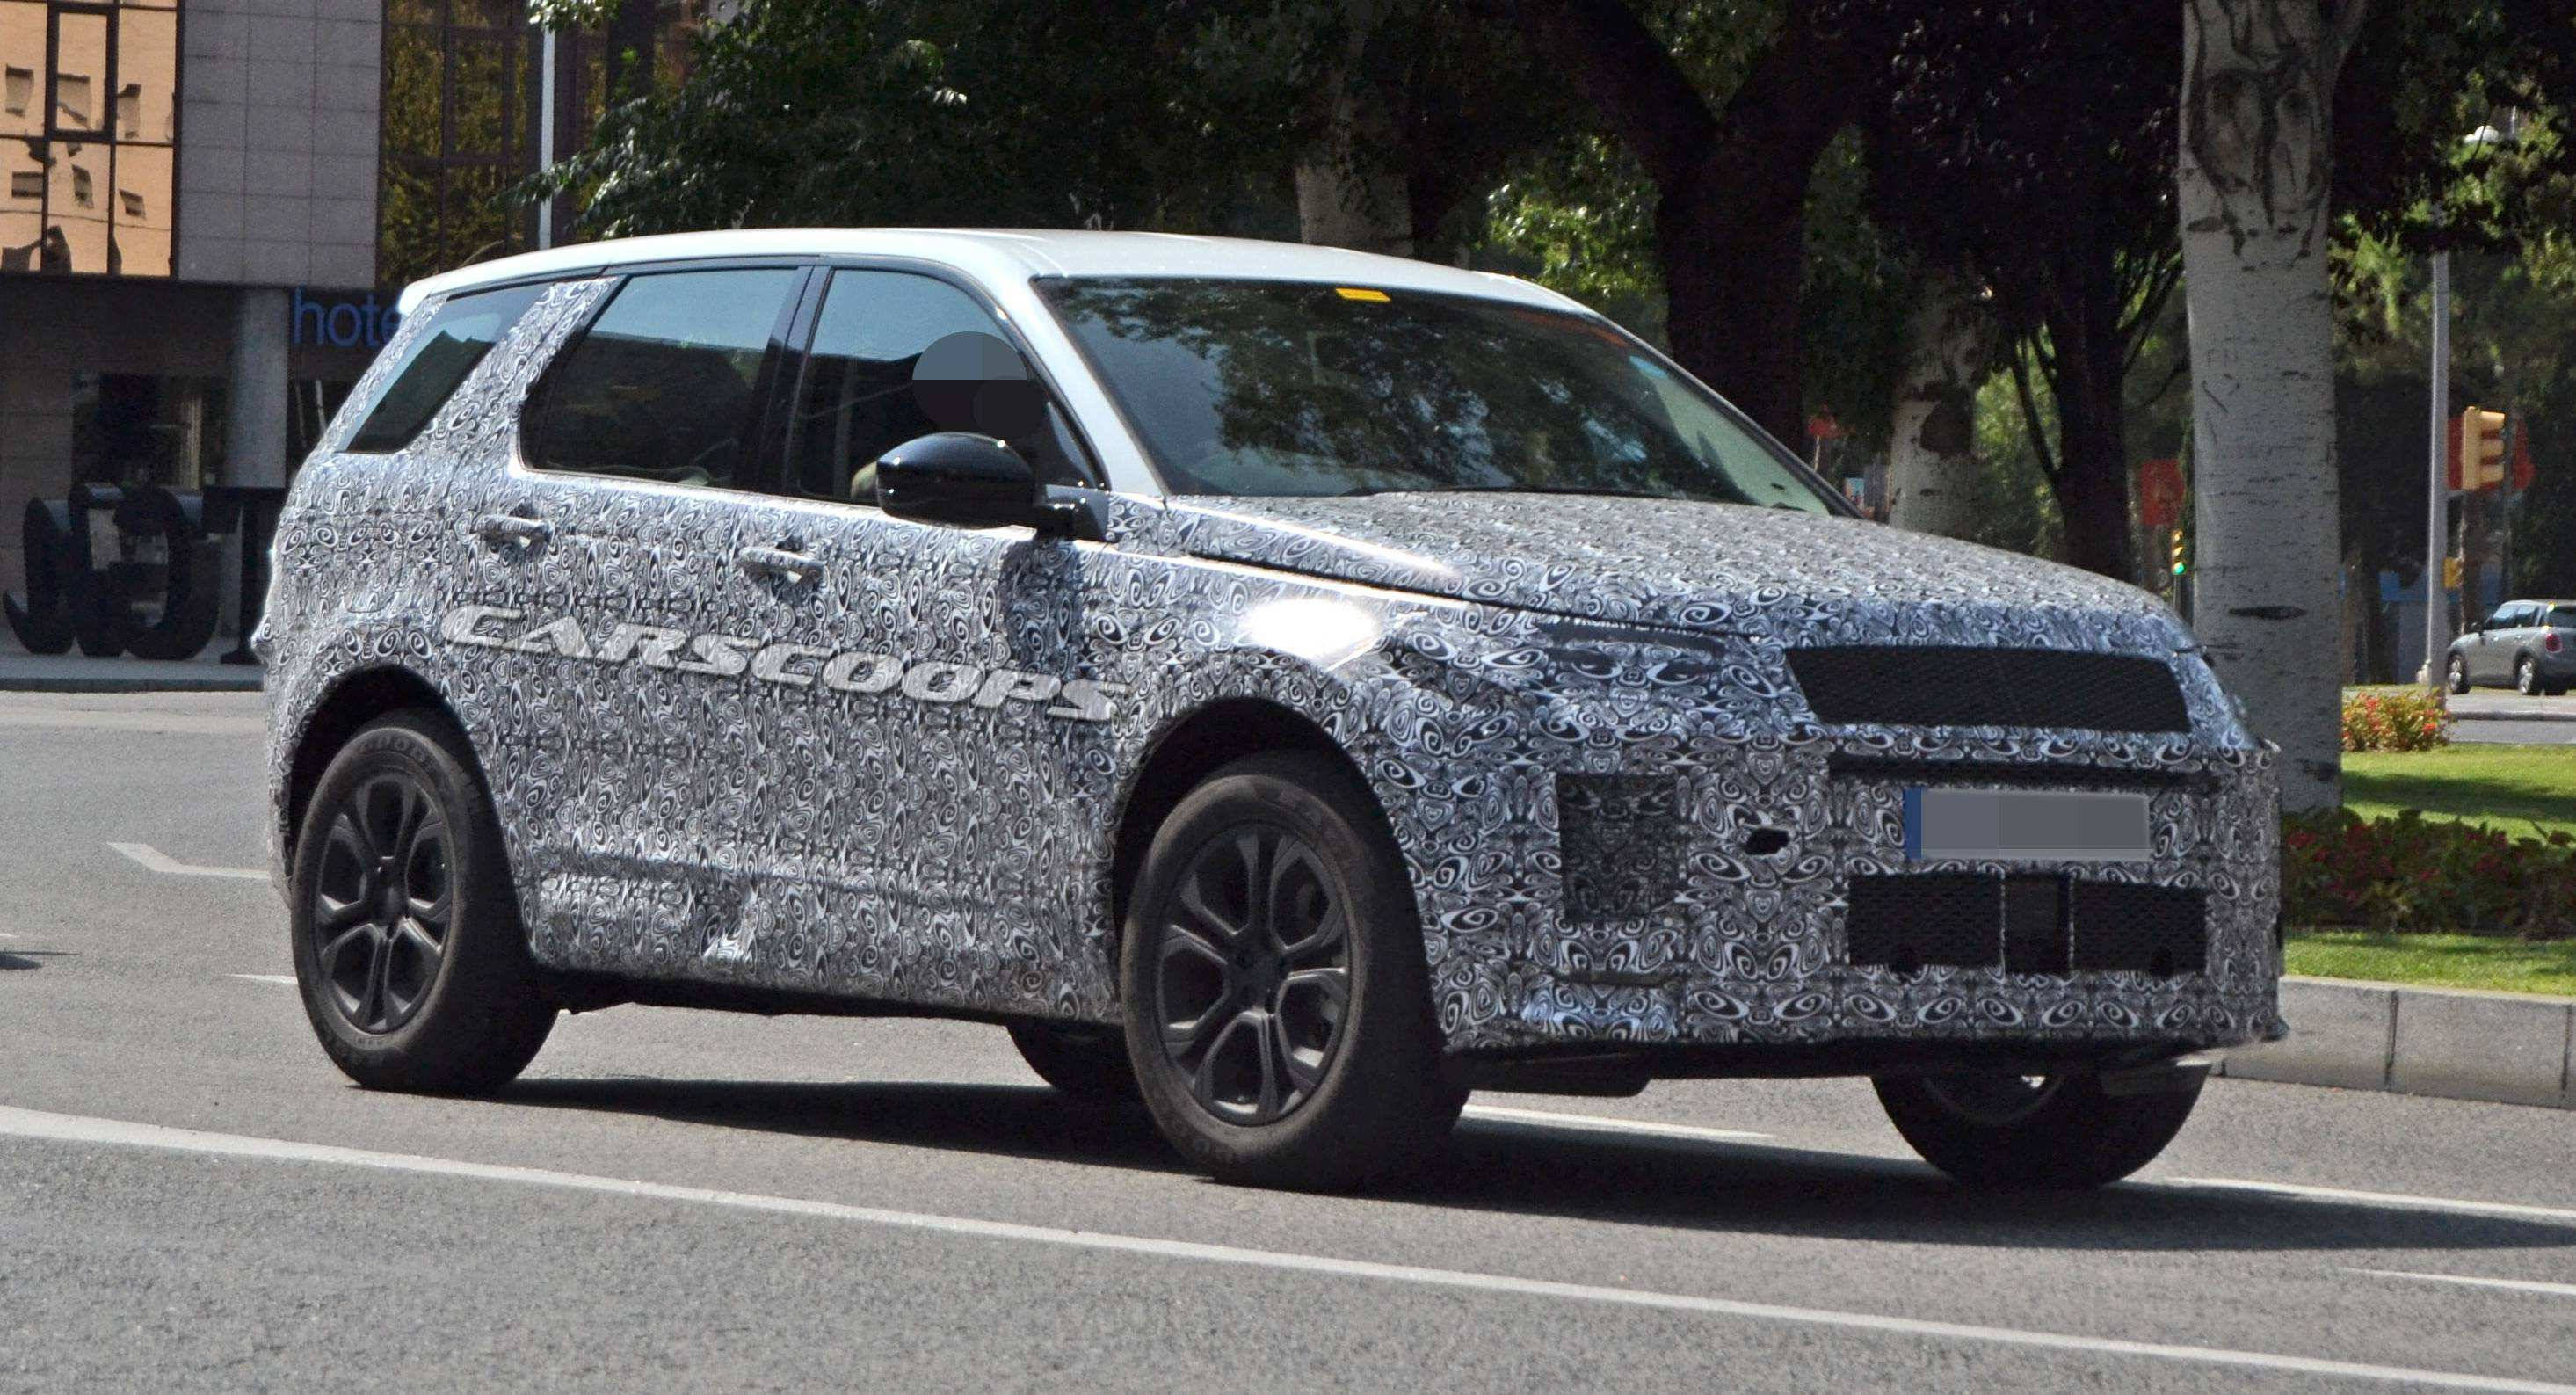 32 Great 2020 Land Rover Discovery Sport Release Date for 2020 Land Rover Discovery Sport